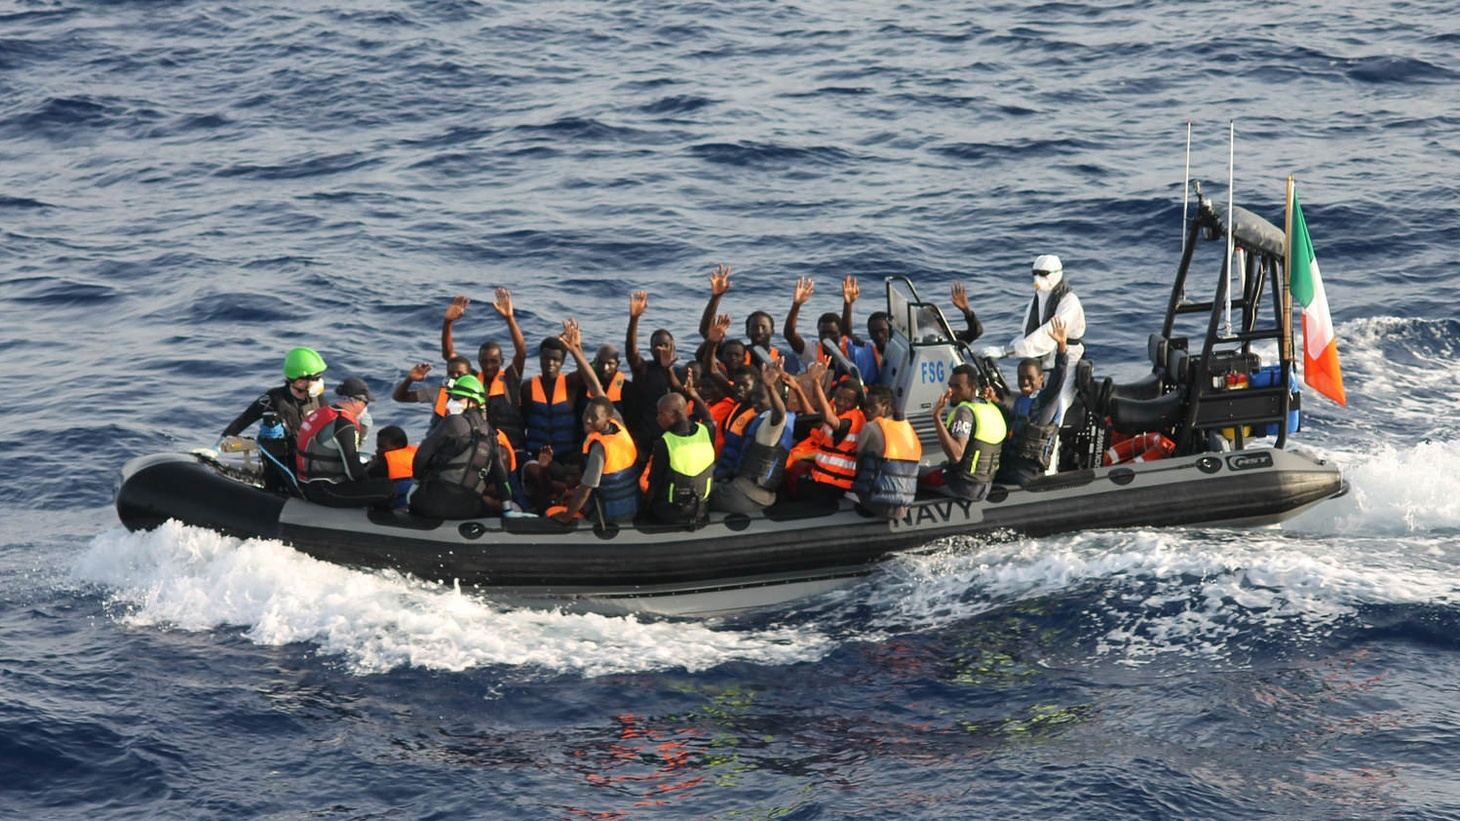 More than 11,000 African migrants were rescued trying to cross the Mediterranean this week. A photographer on one of the boats off Libya's coast captured a dramatic rescue.